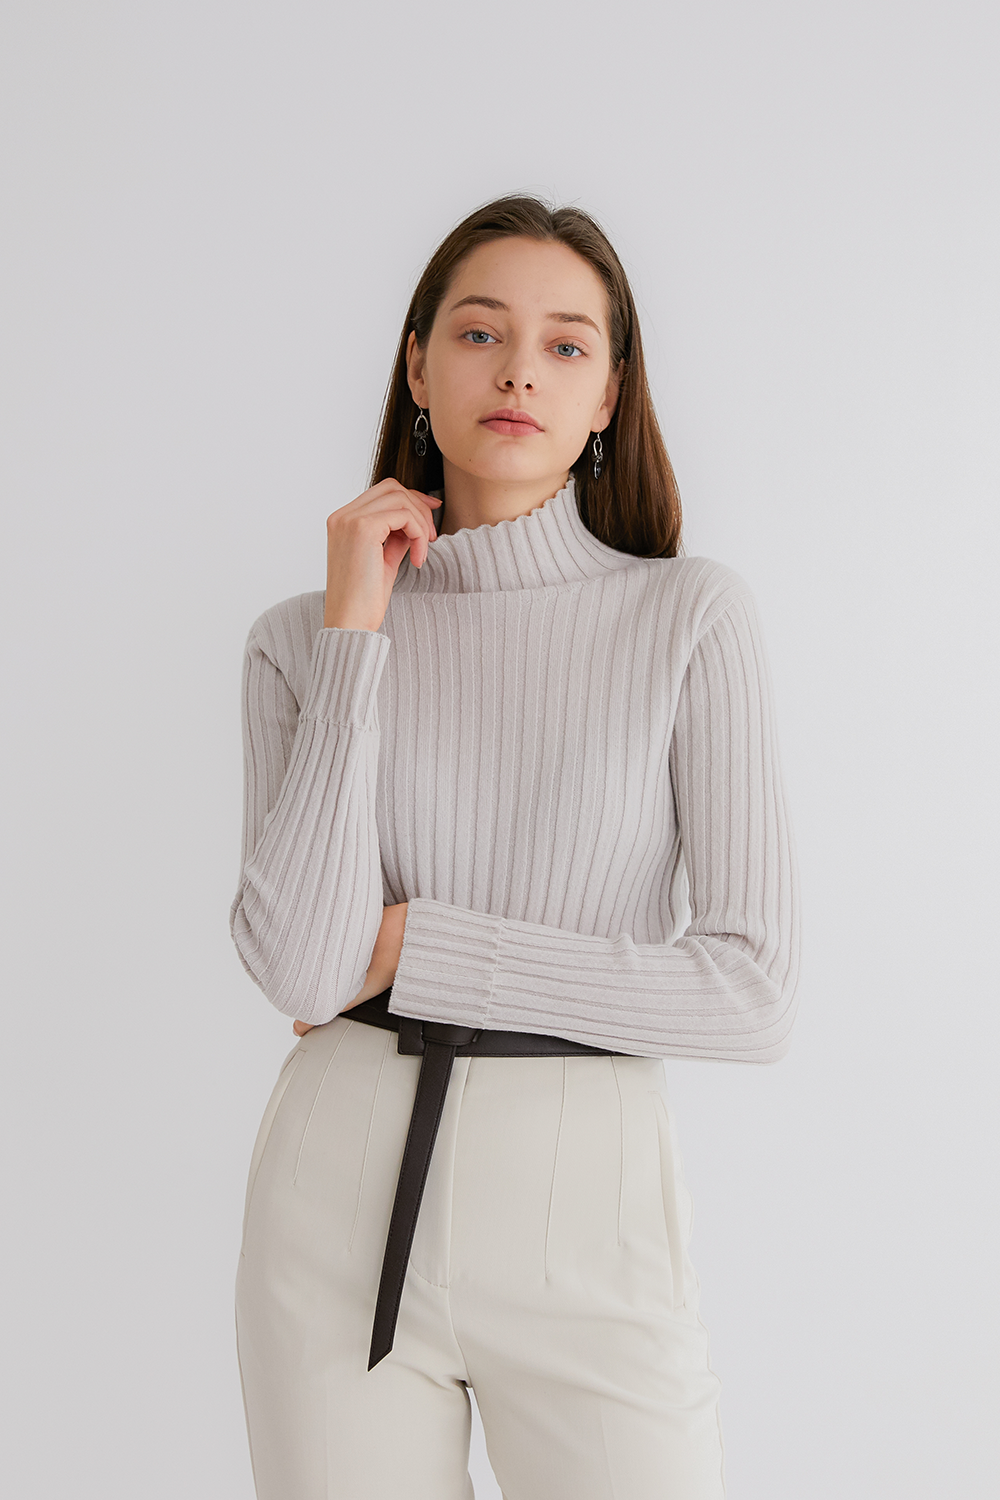 Pure cashmere100 ribbed soft-touch sweater by whole-garment knitting - Dove gray (인기 상품)